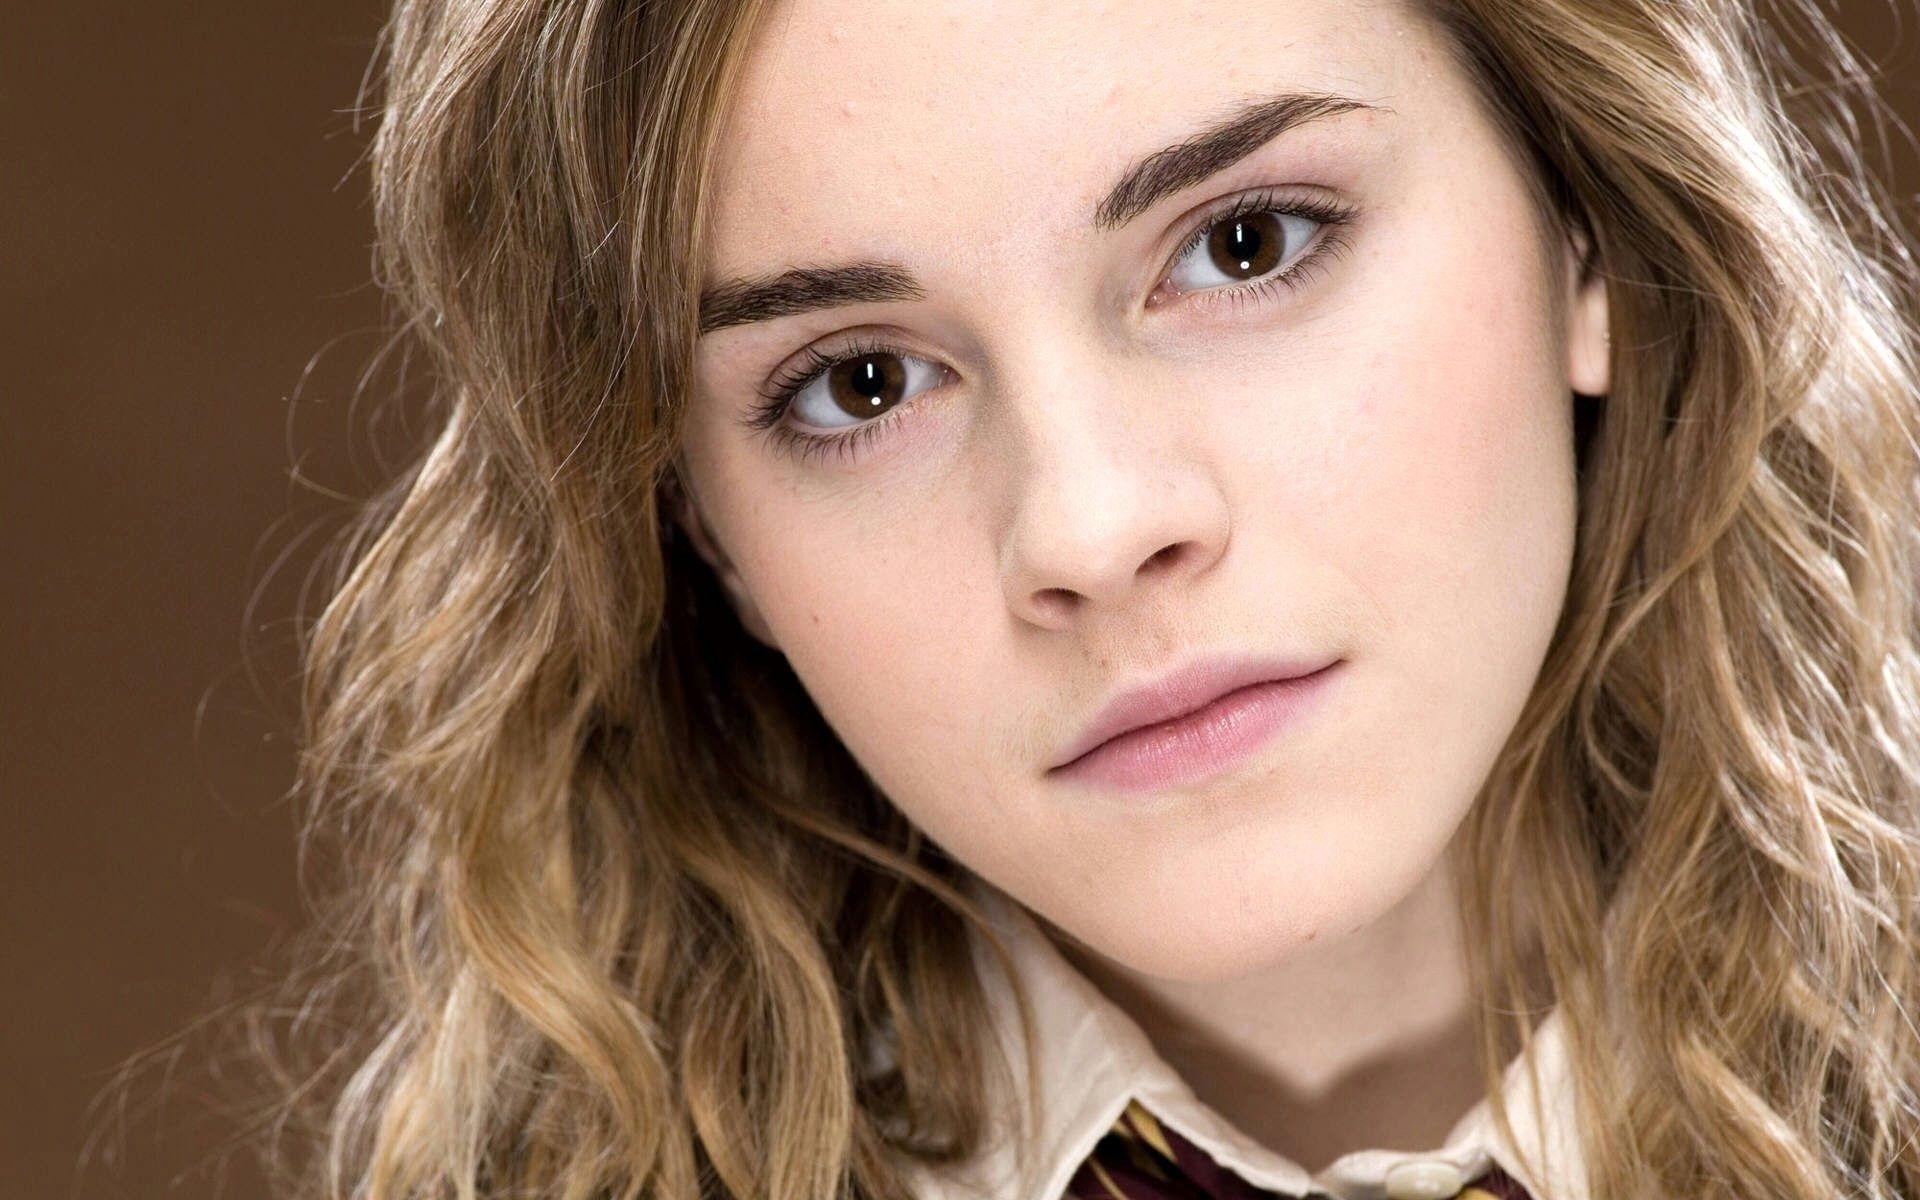 Emma Watson 275 Wallpapers | HD Wallpapers